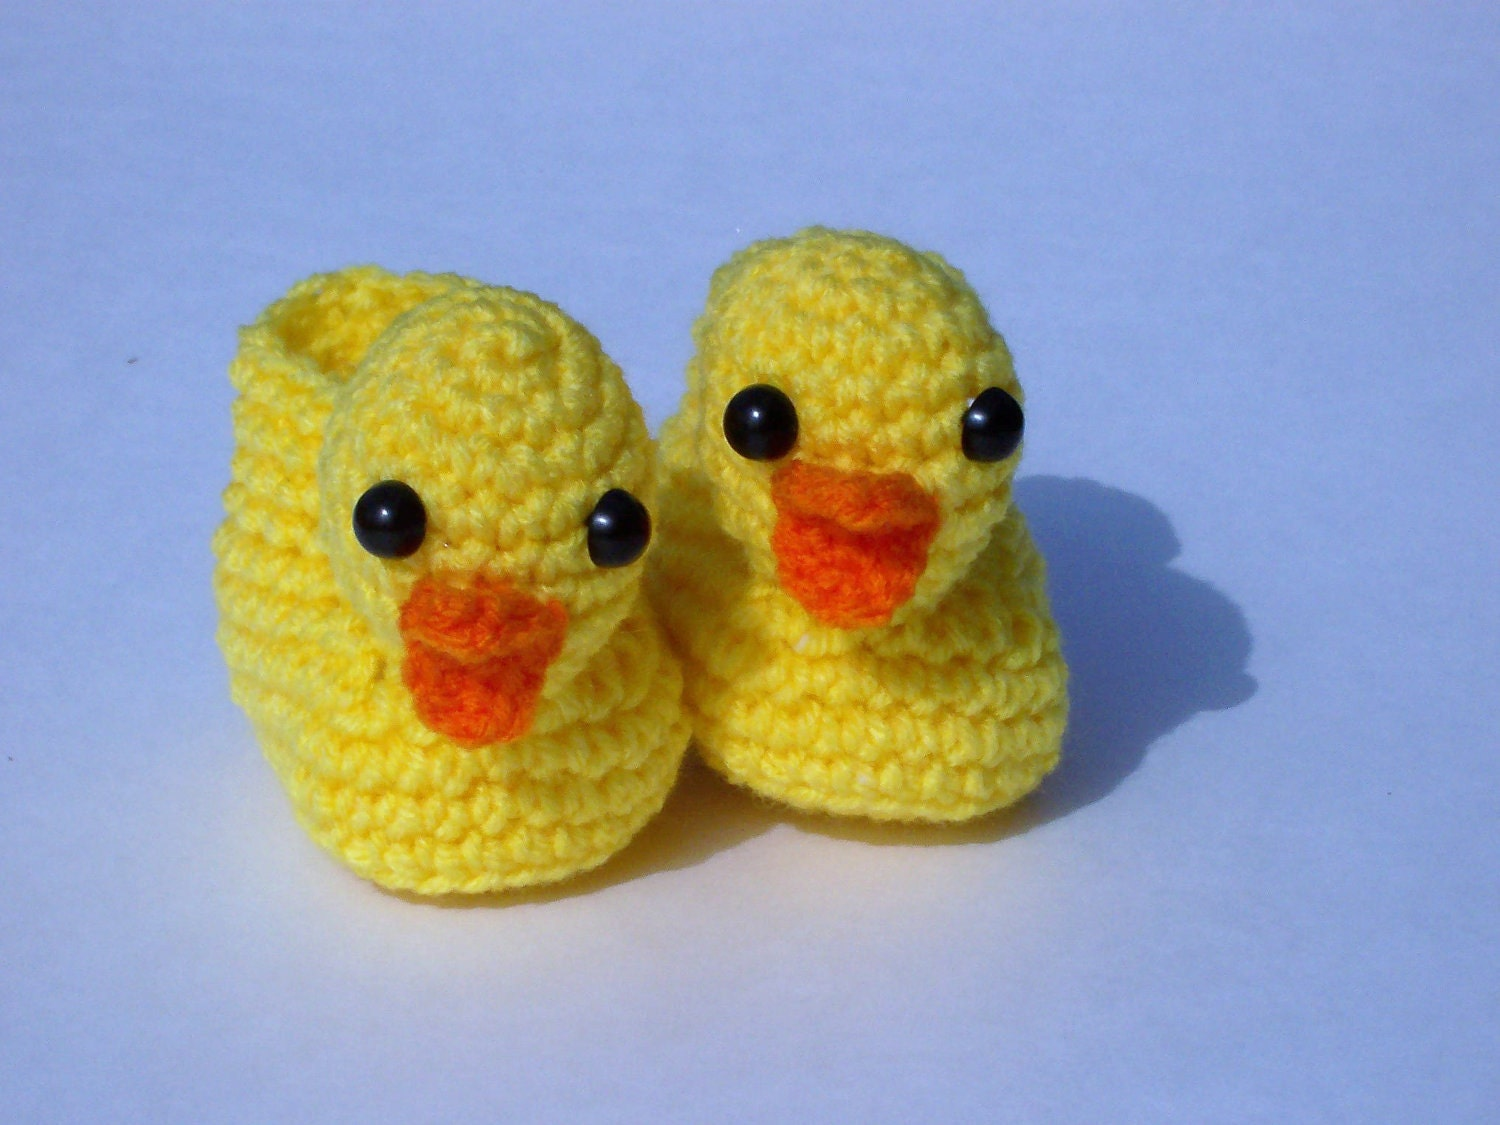 Puppy Dog Baby Hat Crochet Pattern : Yellow Ducky Slippers Crocheted Baby Booties by ...